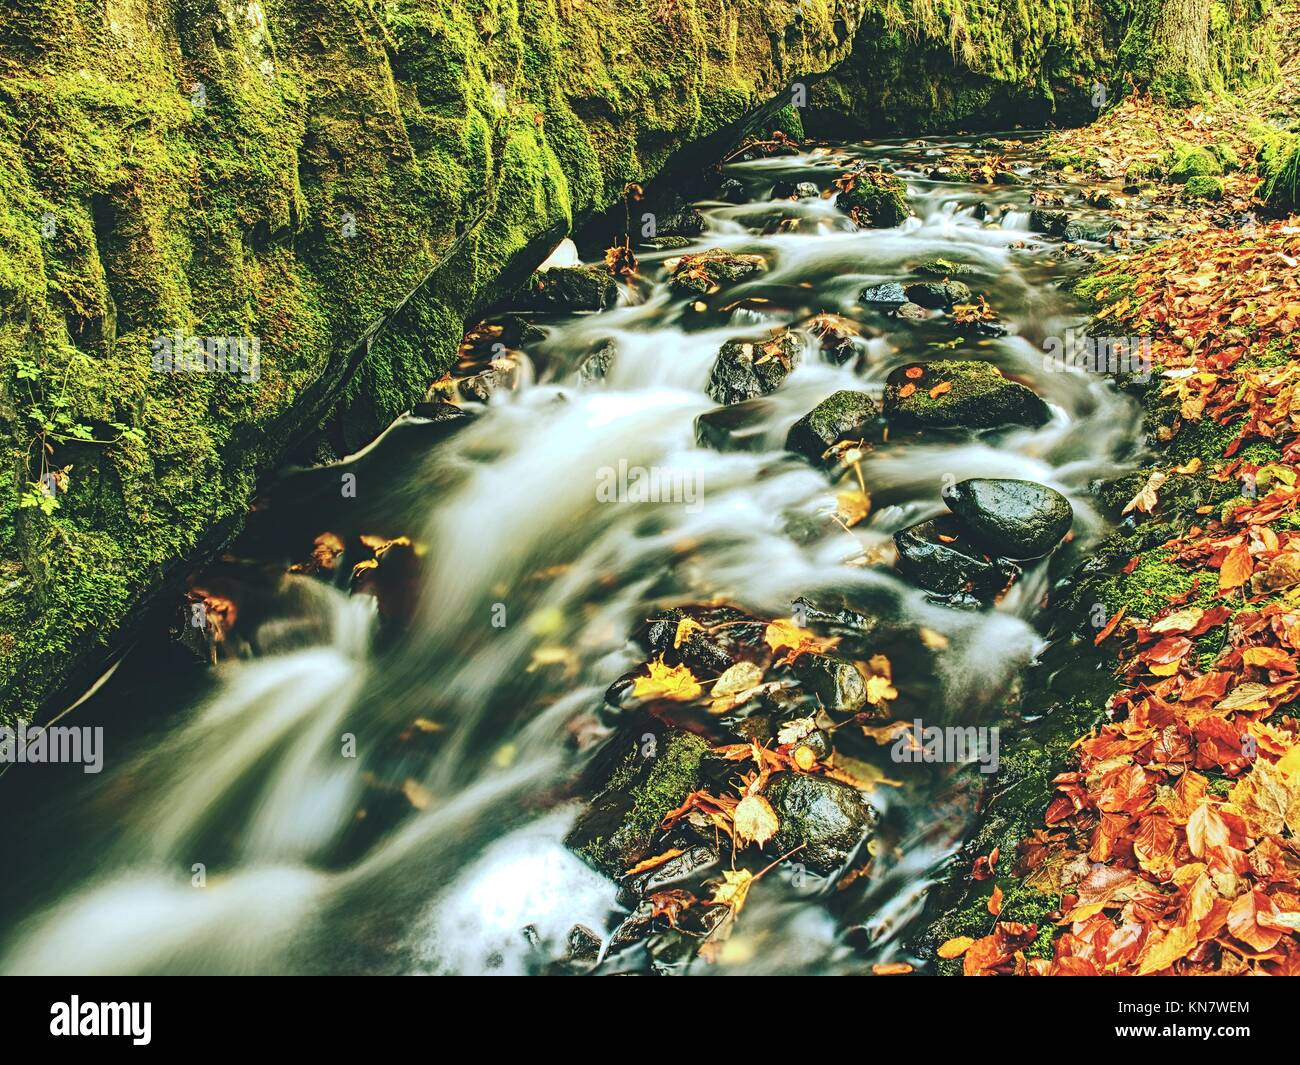 Weir in mountain stream. Colorful leaves  on stones in cold dark water. Shinning bubbles create bright trails on - Stock Image